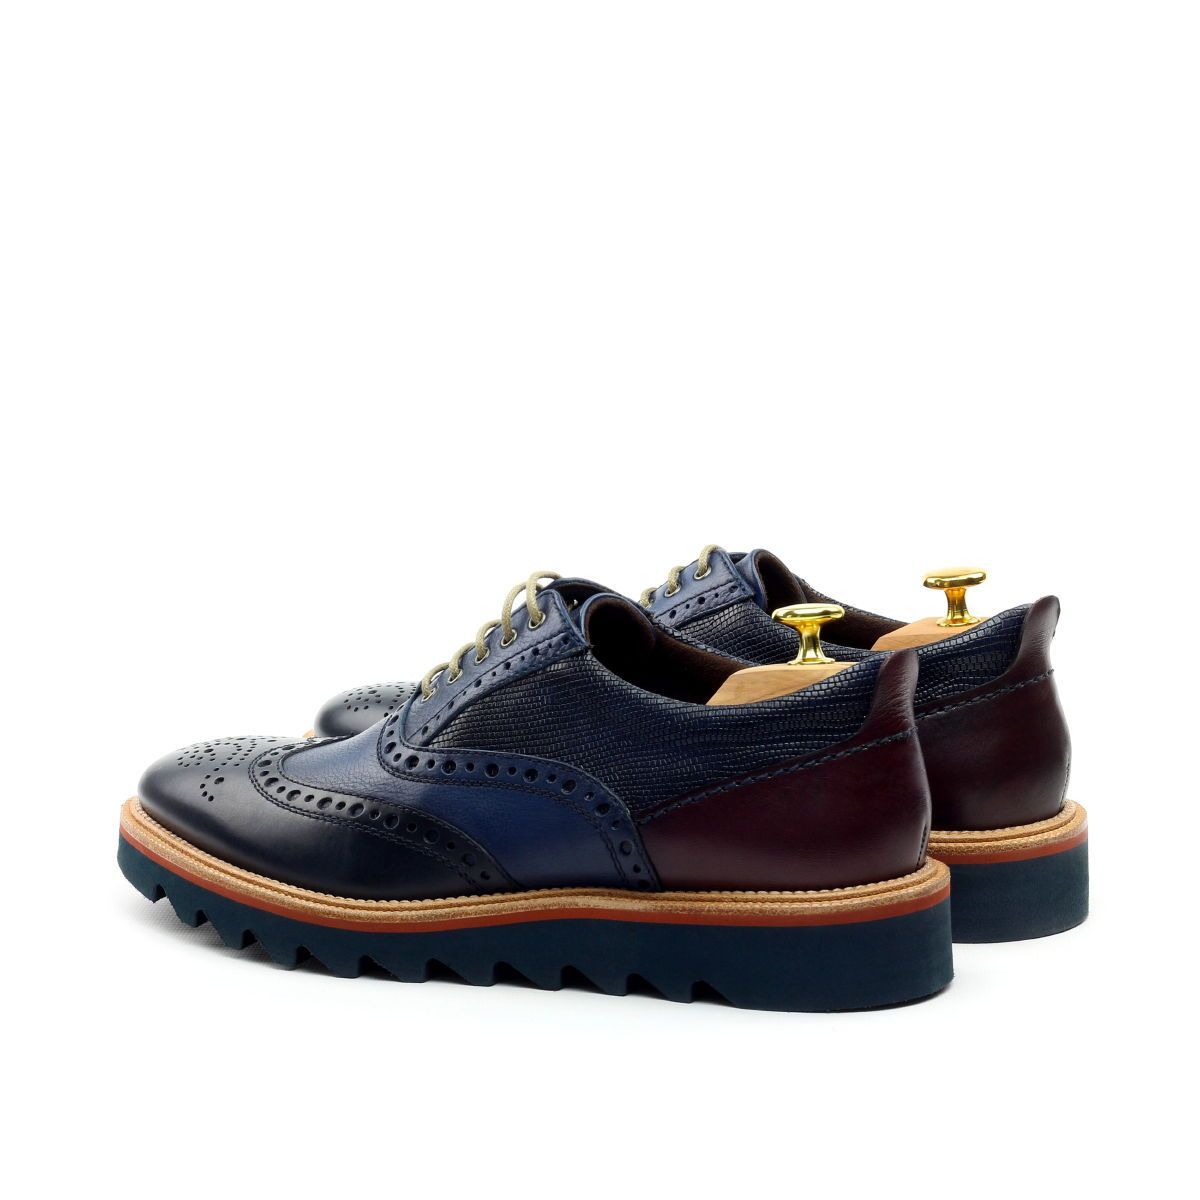 Omine Full Brogue Oxford